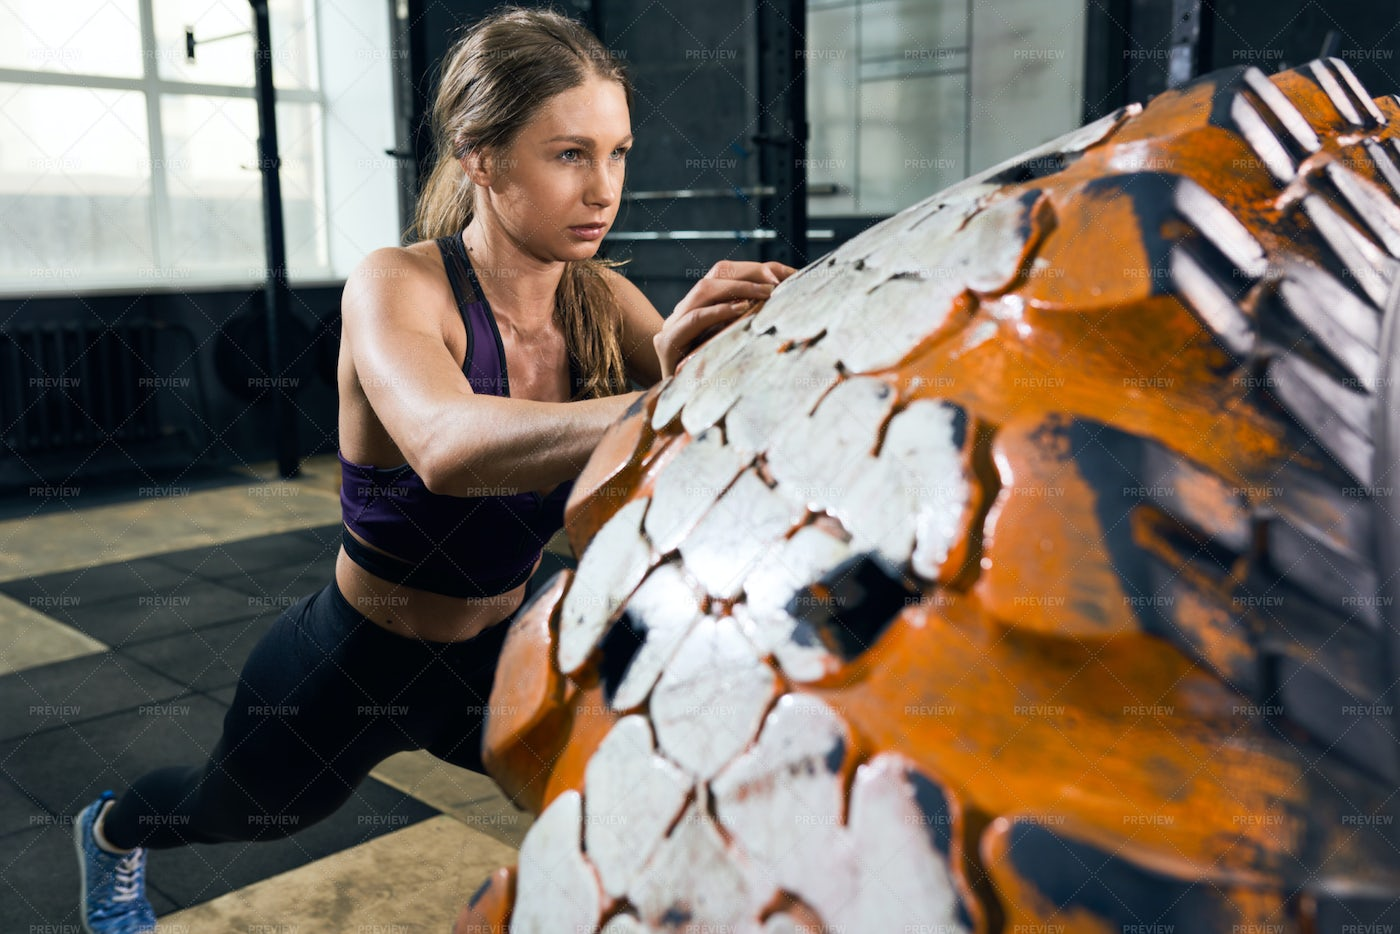 Woman Flipping Tire In Gym: Stock Photos